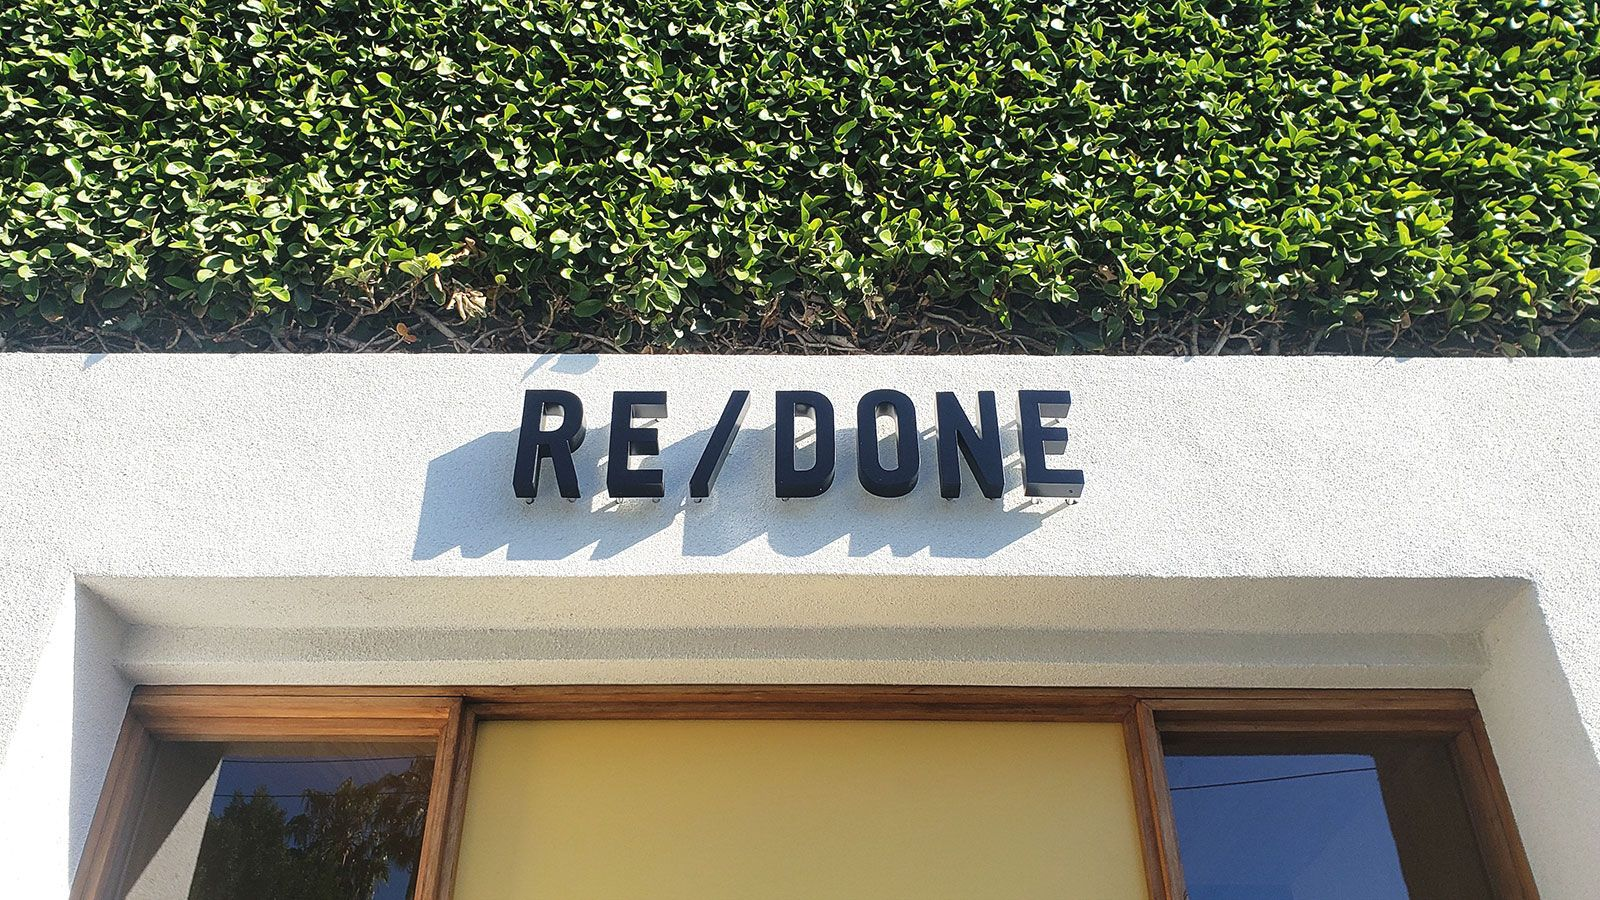 Redone storefront 3D letters